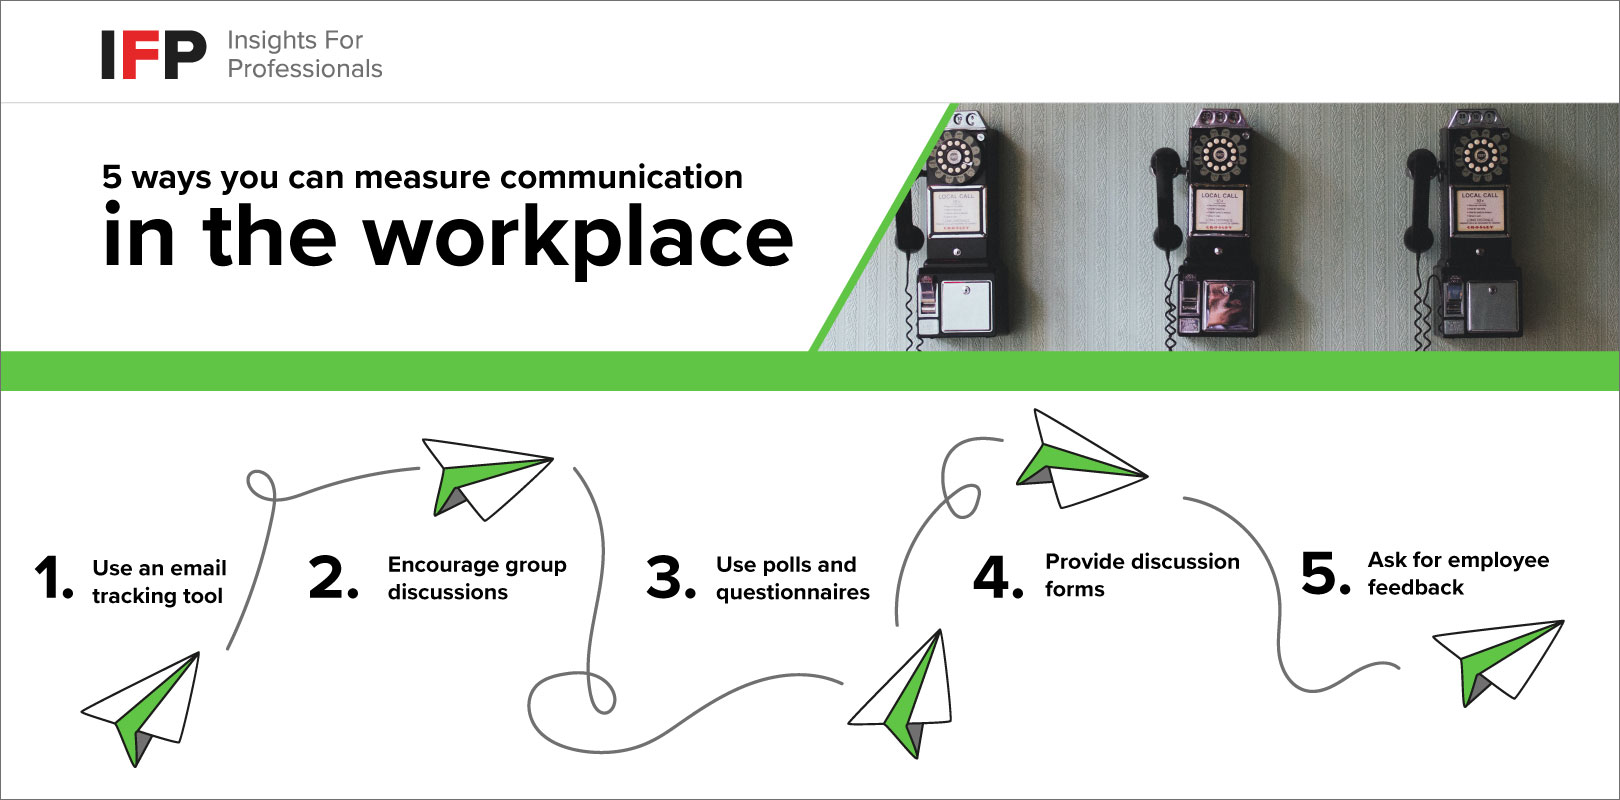 IFP diagram - different ways you can measure communication in the workplace